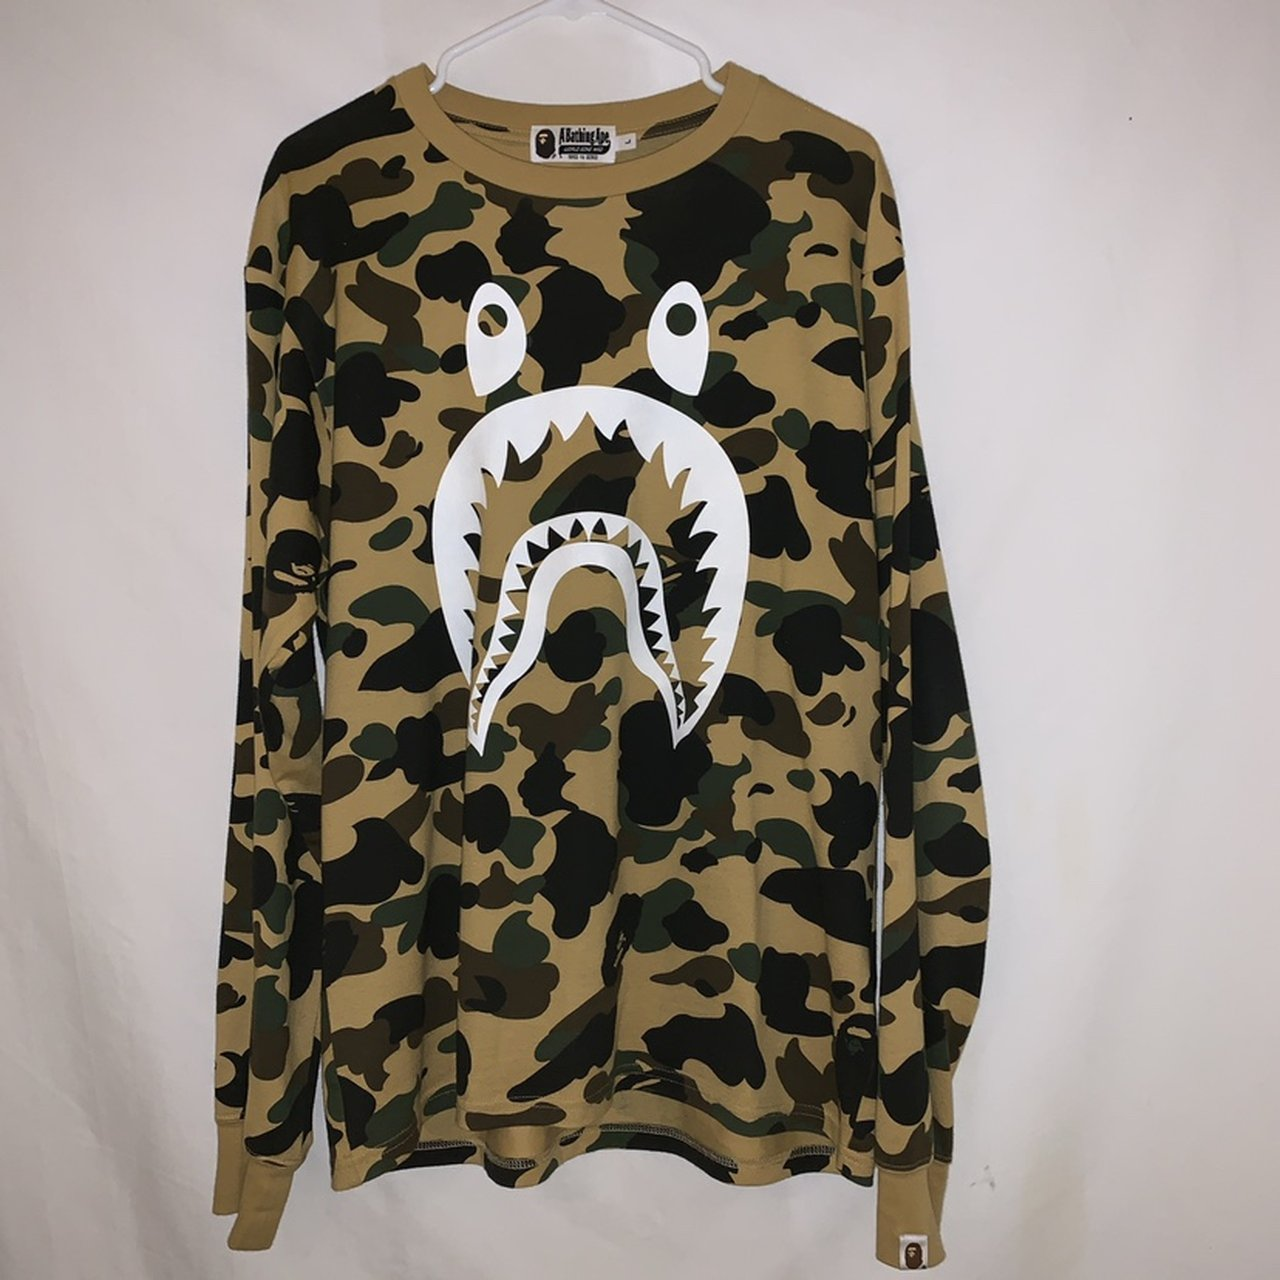 be9d8fed9a9 NEED THIS GONE‼ ⚠ Camo White Bape Shark